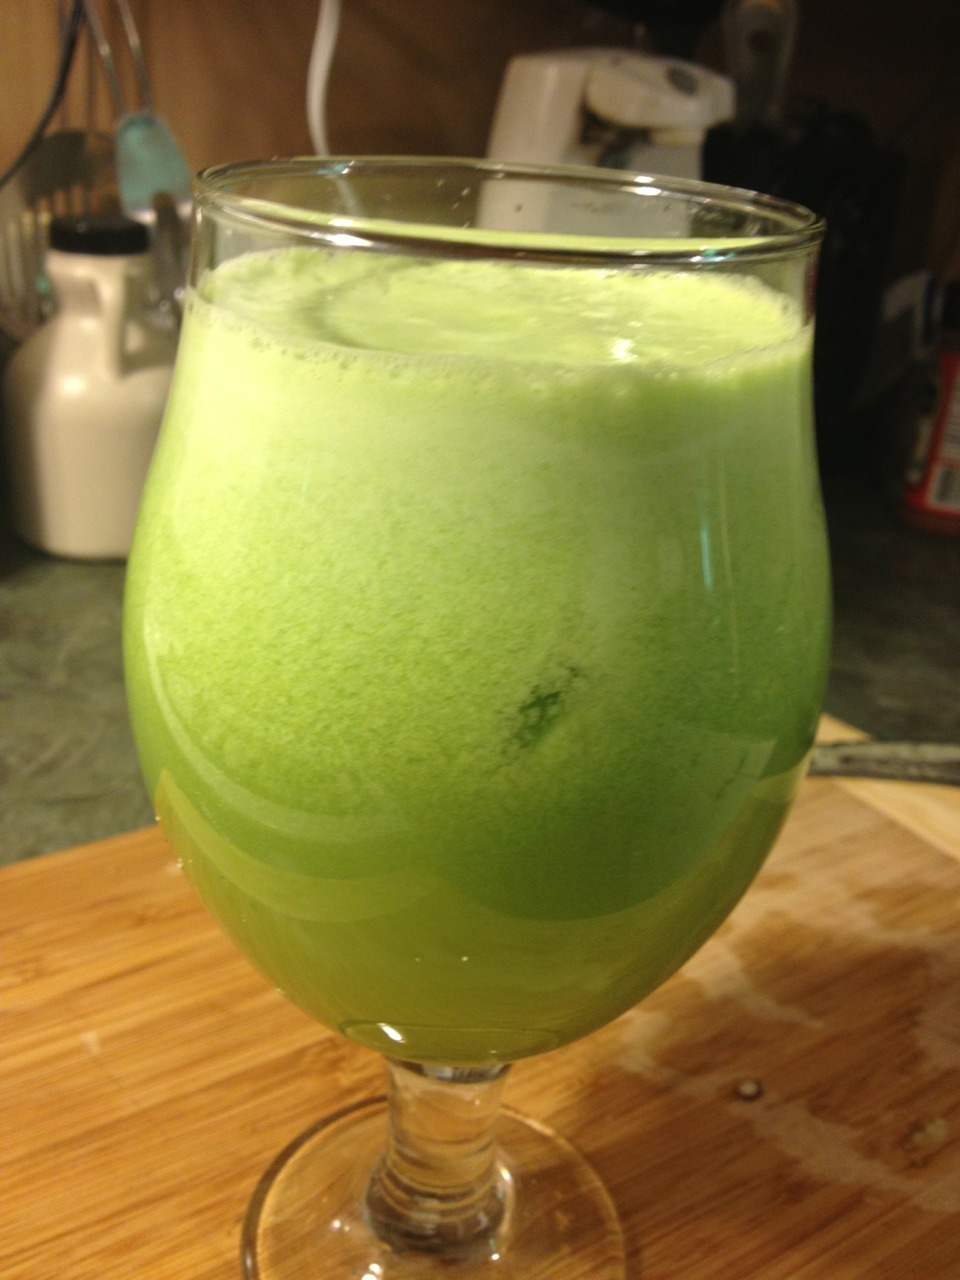 "wordslessspoken:  This a nice Spring twist on a Green Machine recipe with mint, lime, & pear:  4 large kale leaves 1/2 head of romaine lettuce 1 large rib celery Handful of parsley  2 large stems of mint 3 Granny Smith apples 1 cucumber 1 pear 1 lime 1/2"" ginger root  Makes 32 oz. for two  I will be juicing this ASAP!"